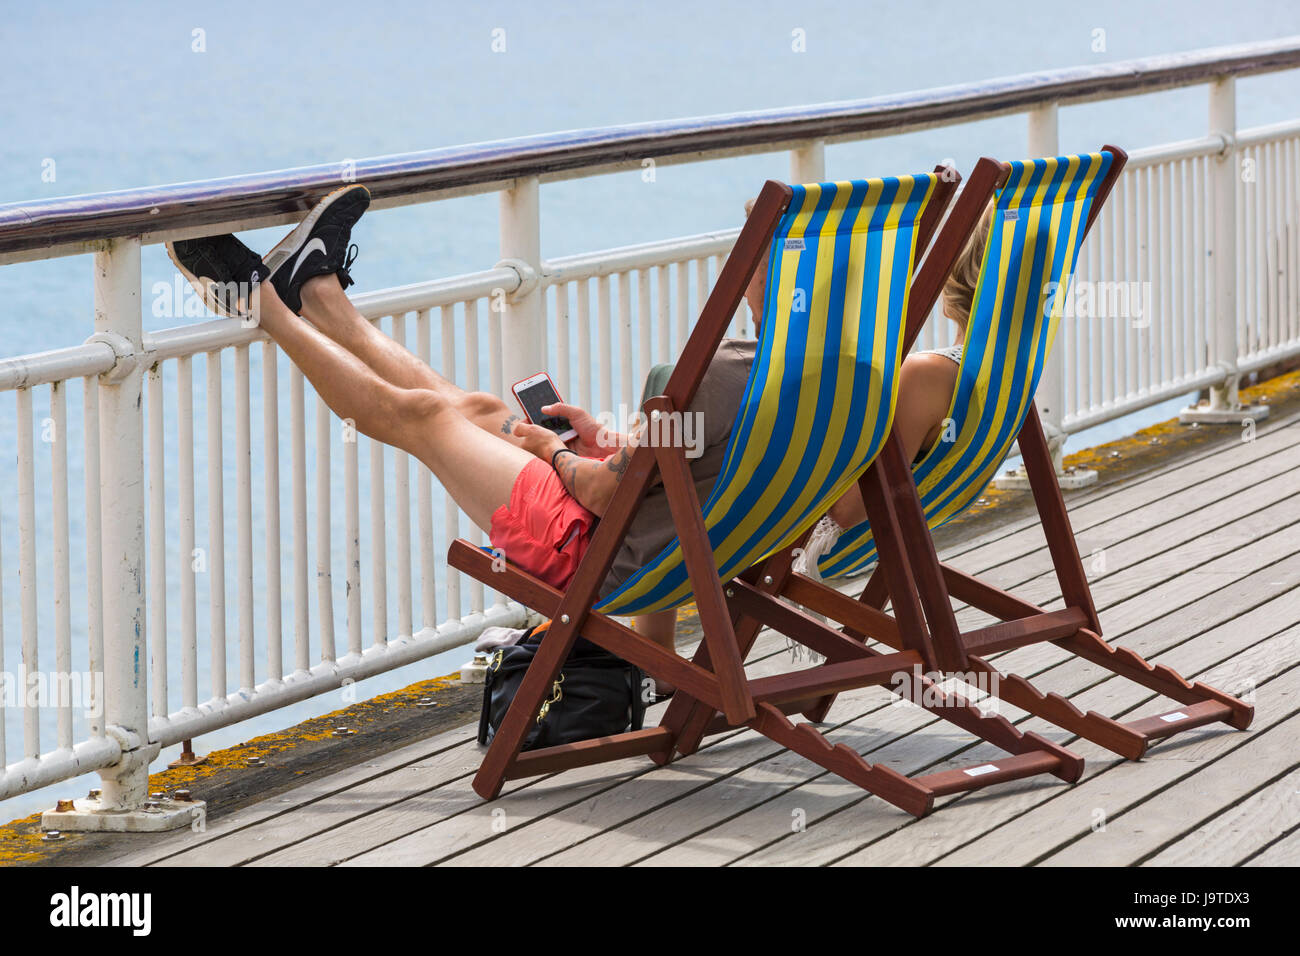 Bournemouth, Dorset, UK. 3rd June, 2017. UK weather: cooler and cloudier with sunny spells at Bournemouth - visitors - Stock Image